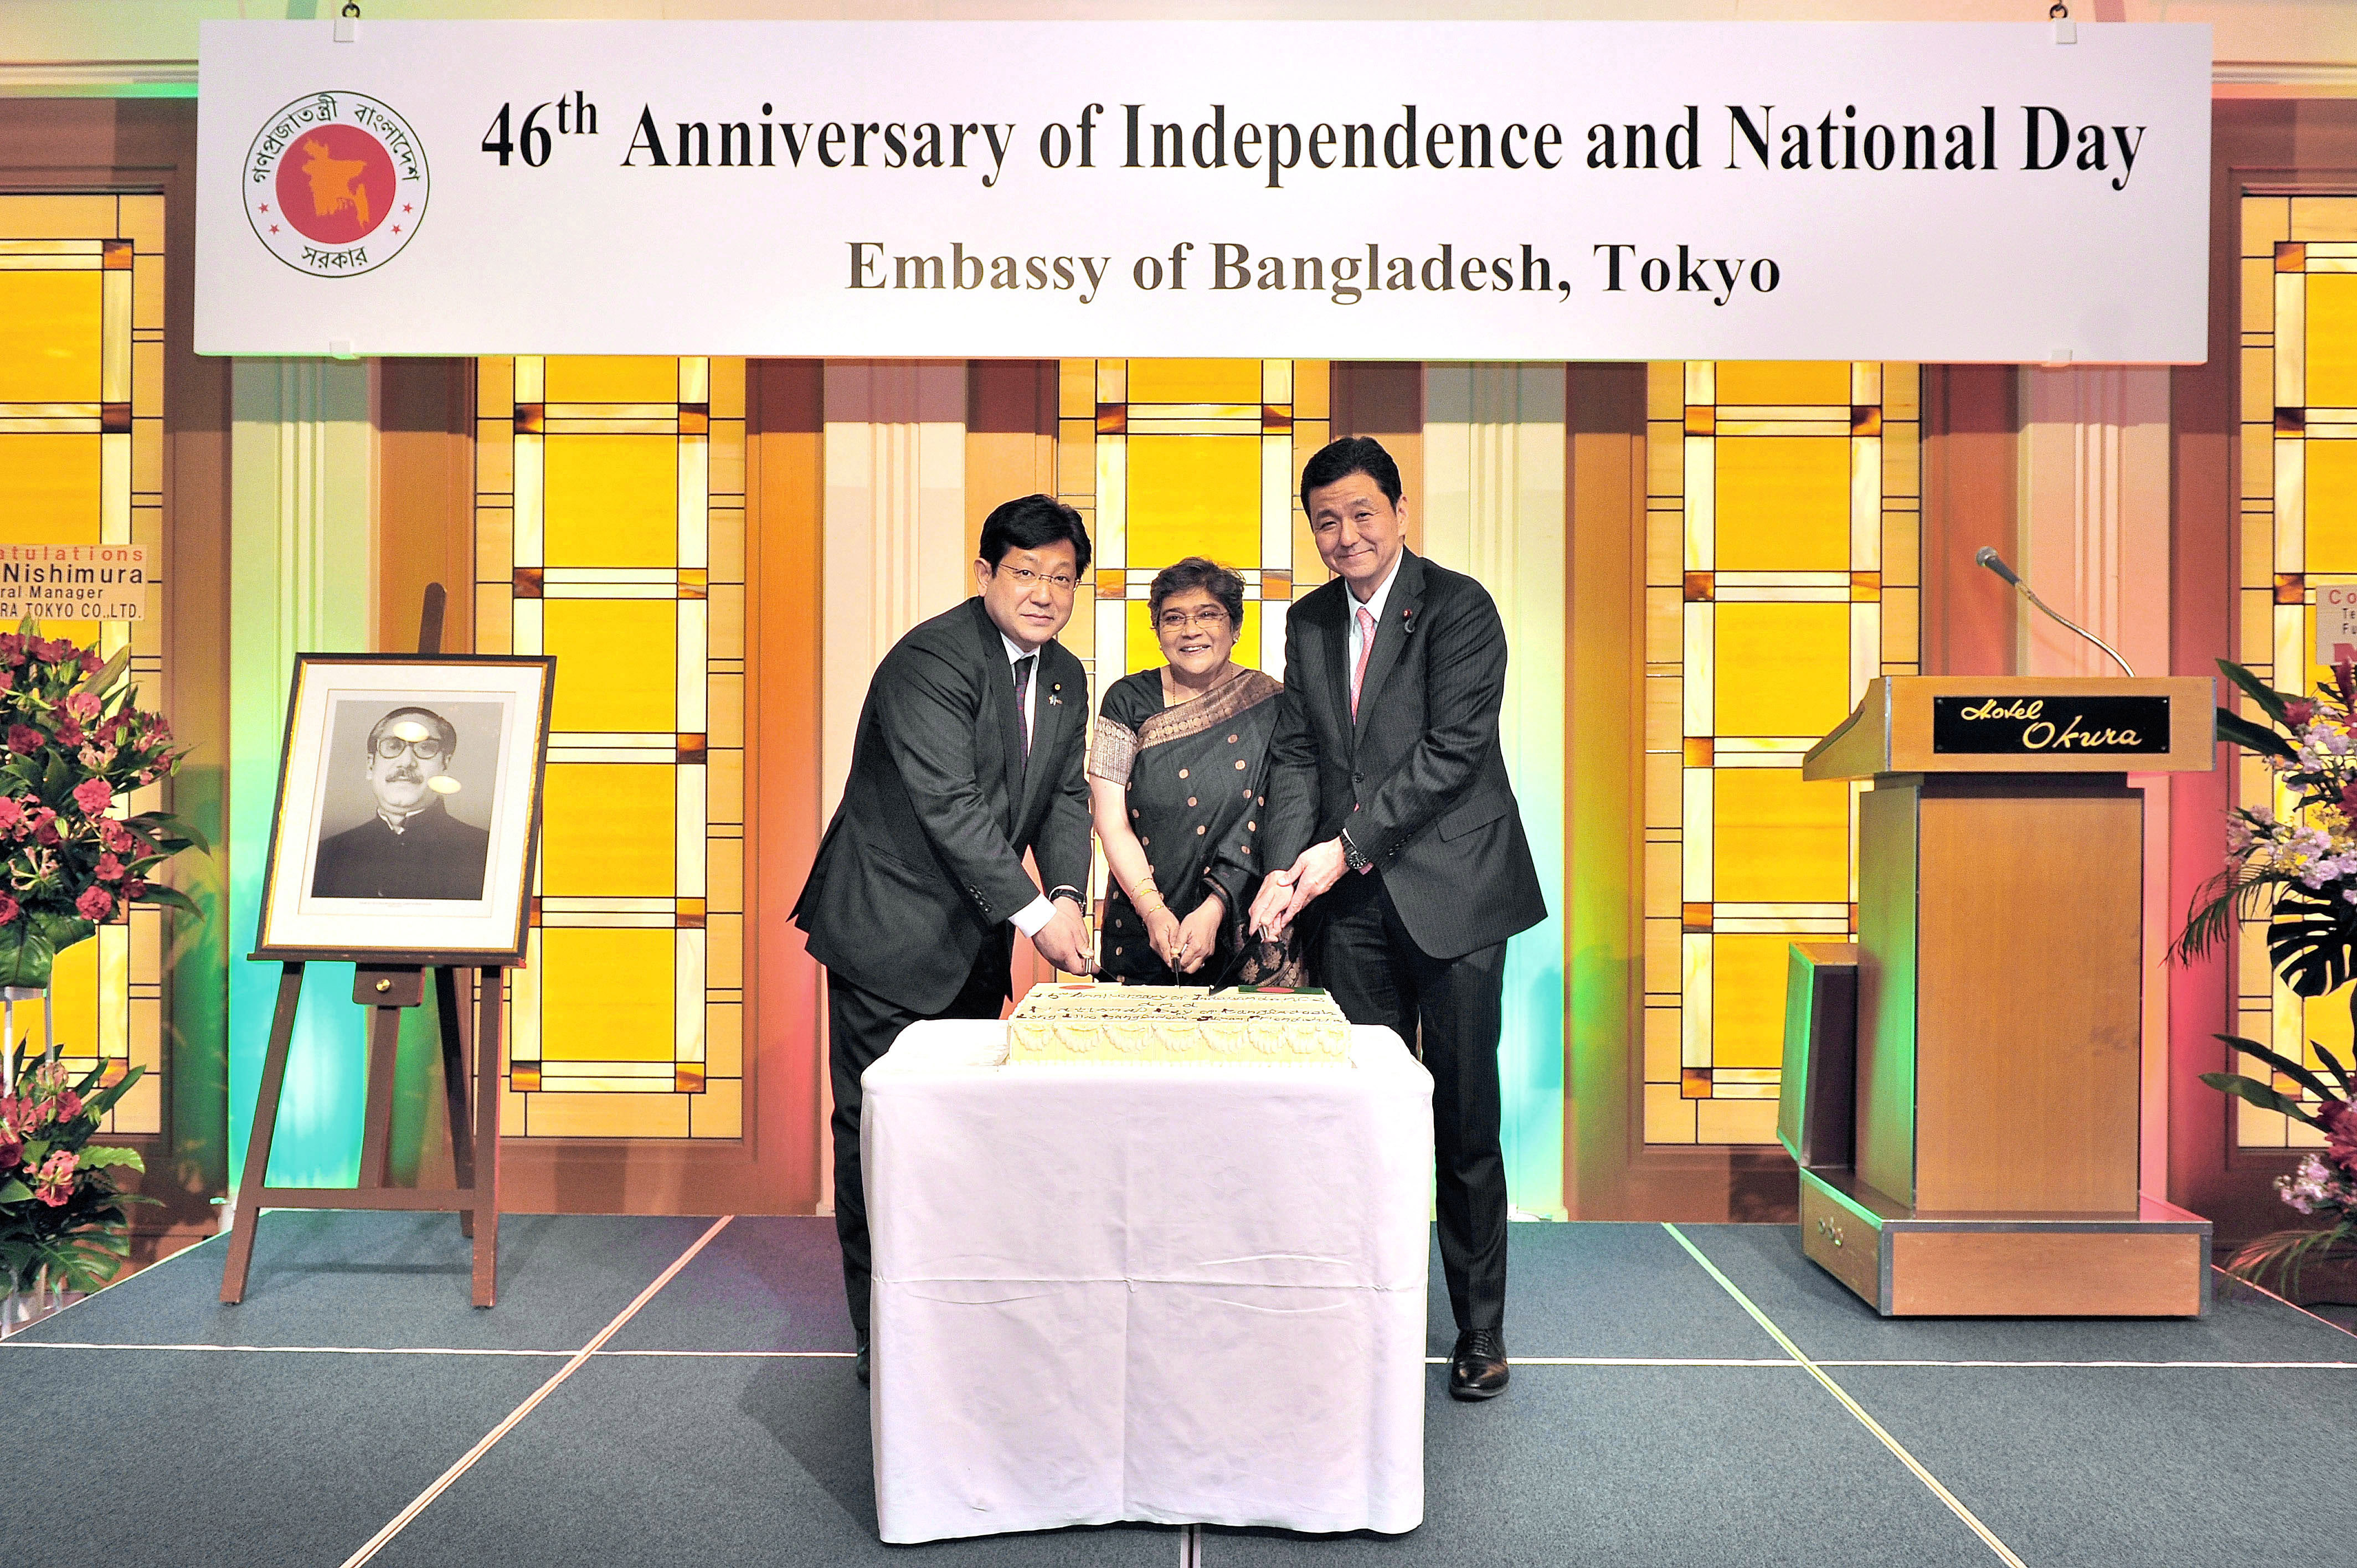 Bangladesh's Ambassador Rabab Fatima (center), Secretary-General of Japan-Bangladesh Parliamentarians' League Ichiro Tsukada (left) and State Minister for Foreign Affairs Nobuo Kishi cut a cake during a reception to celebrate the 46th anniversary of independence and the national day of the People's Republic of Bangladesh at the Hotel Okura, Tokyo, on March 28. |  YOSHIAKI MIURA